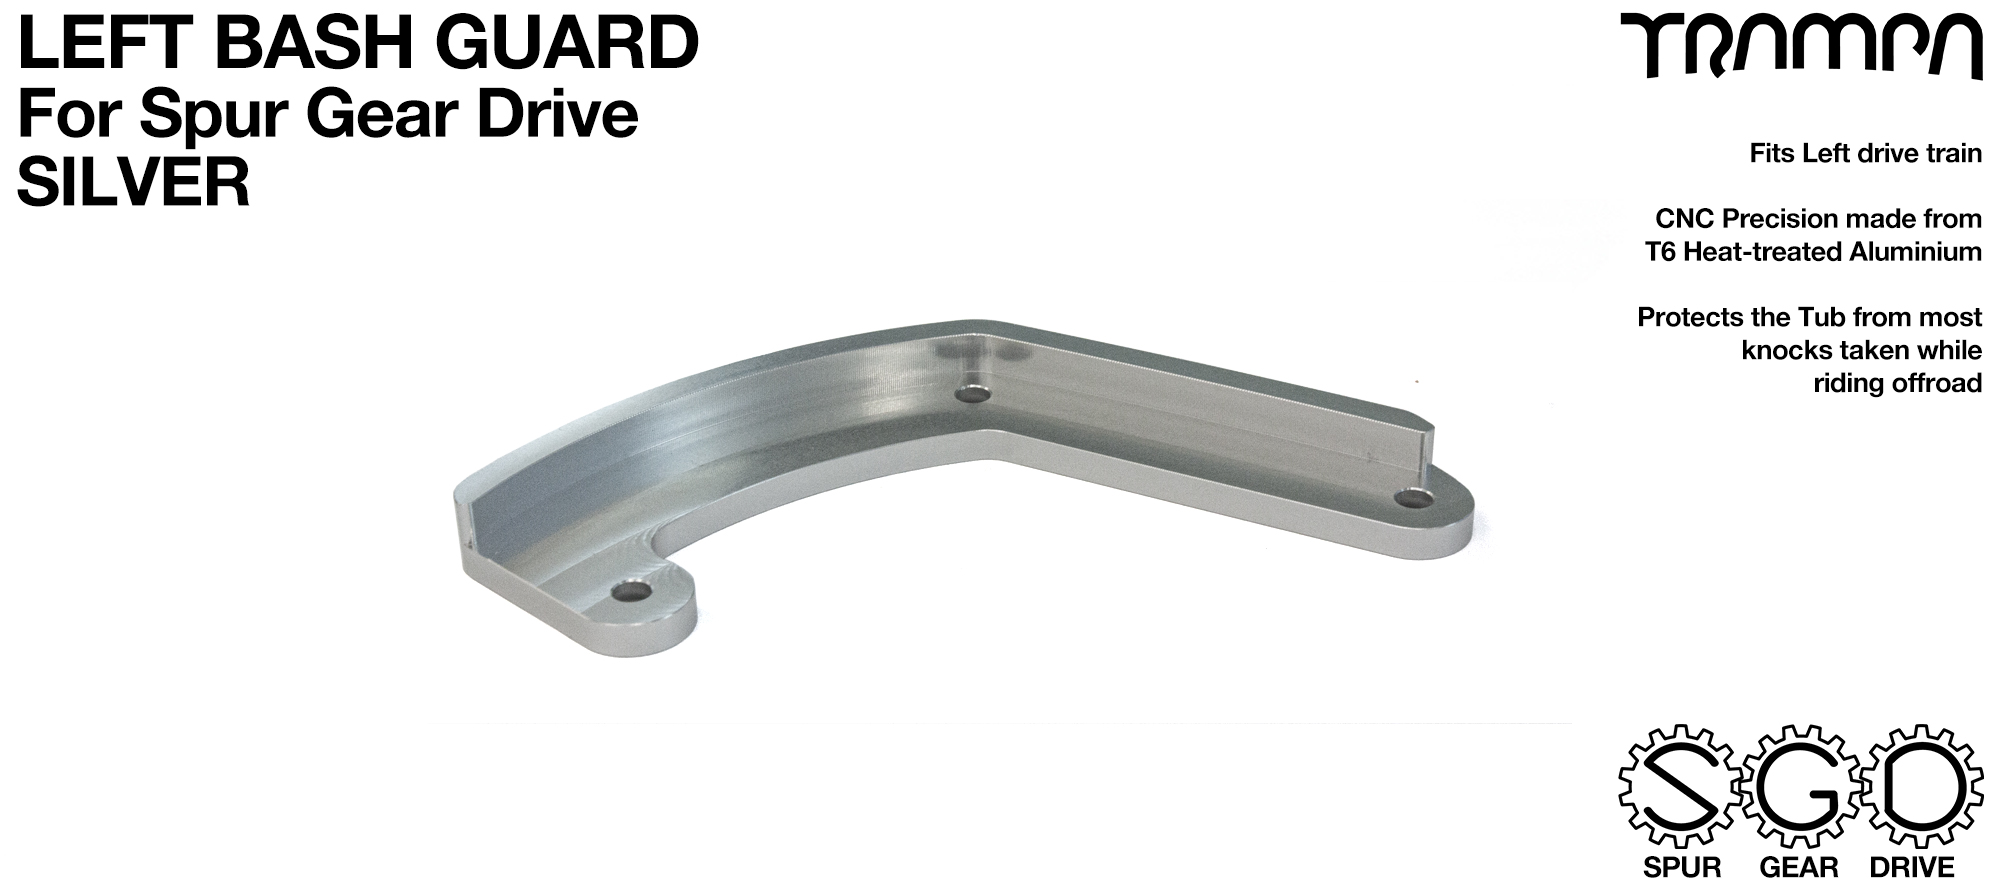 SPUR Gear Drive Bash Guard - LEFT Side - SILVER